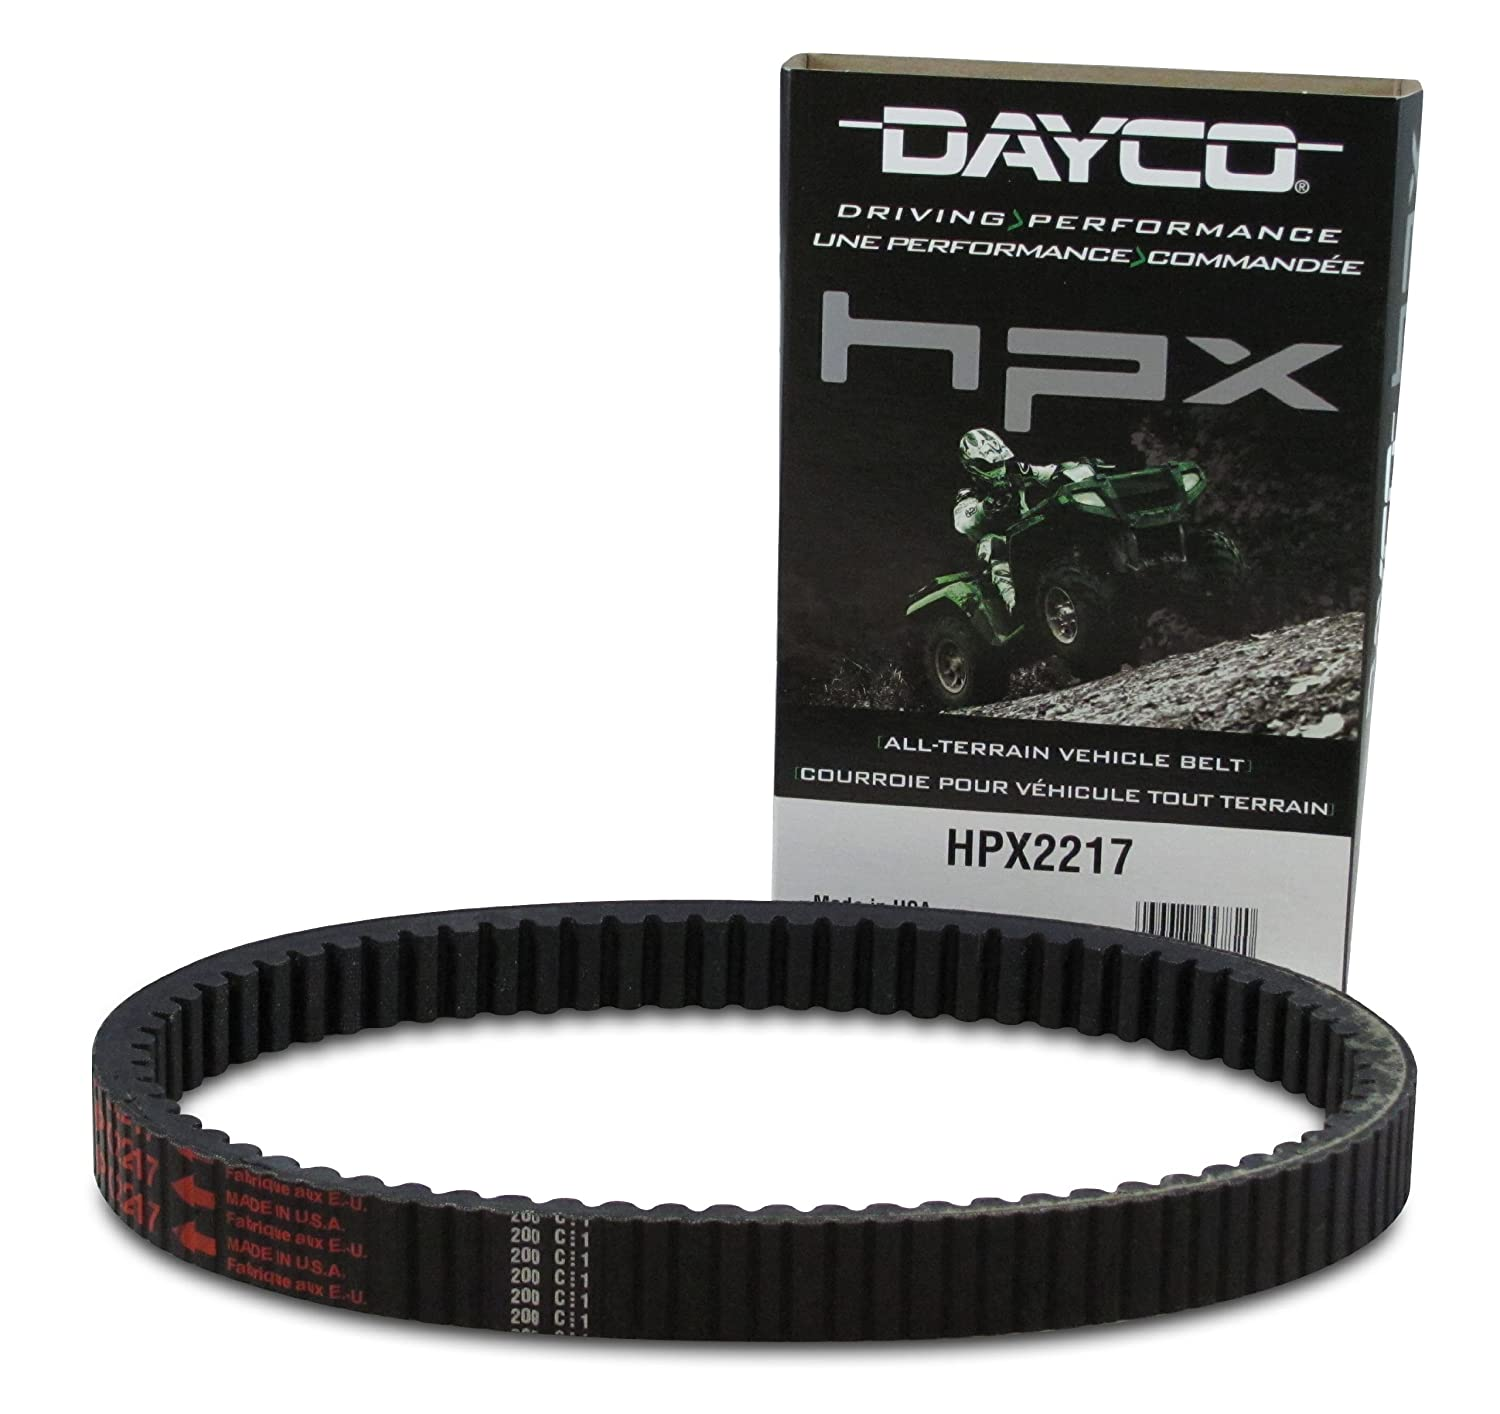 Dayco HPX2217 HPX High Performance Extreme ATV/UTV Drive Belt